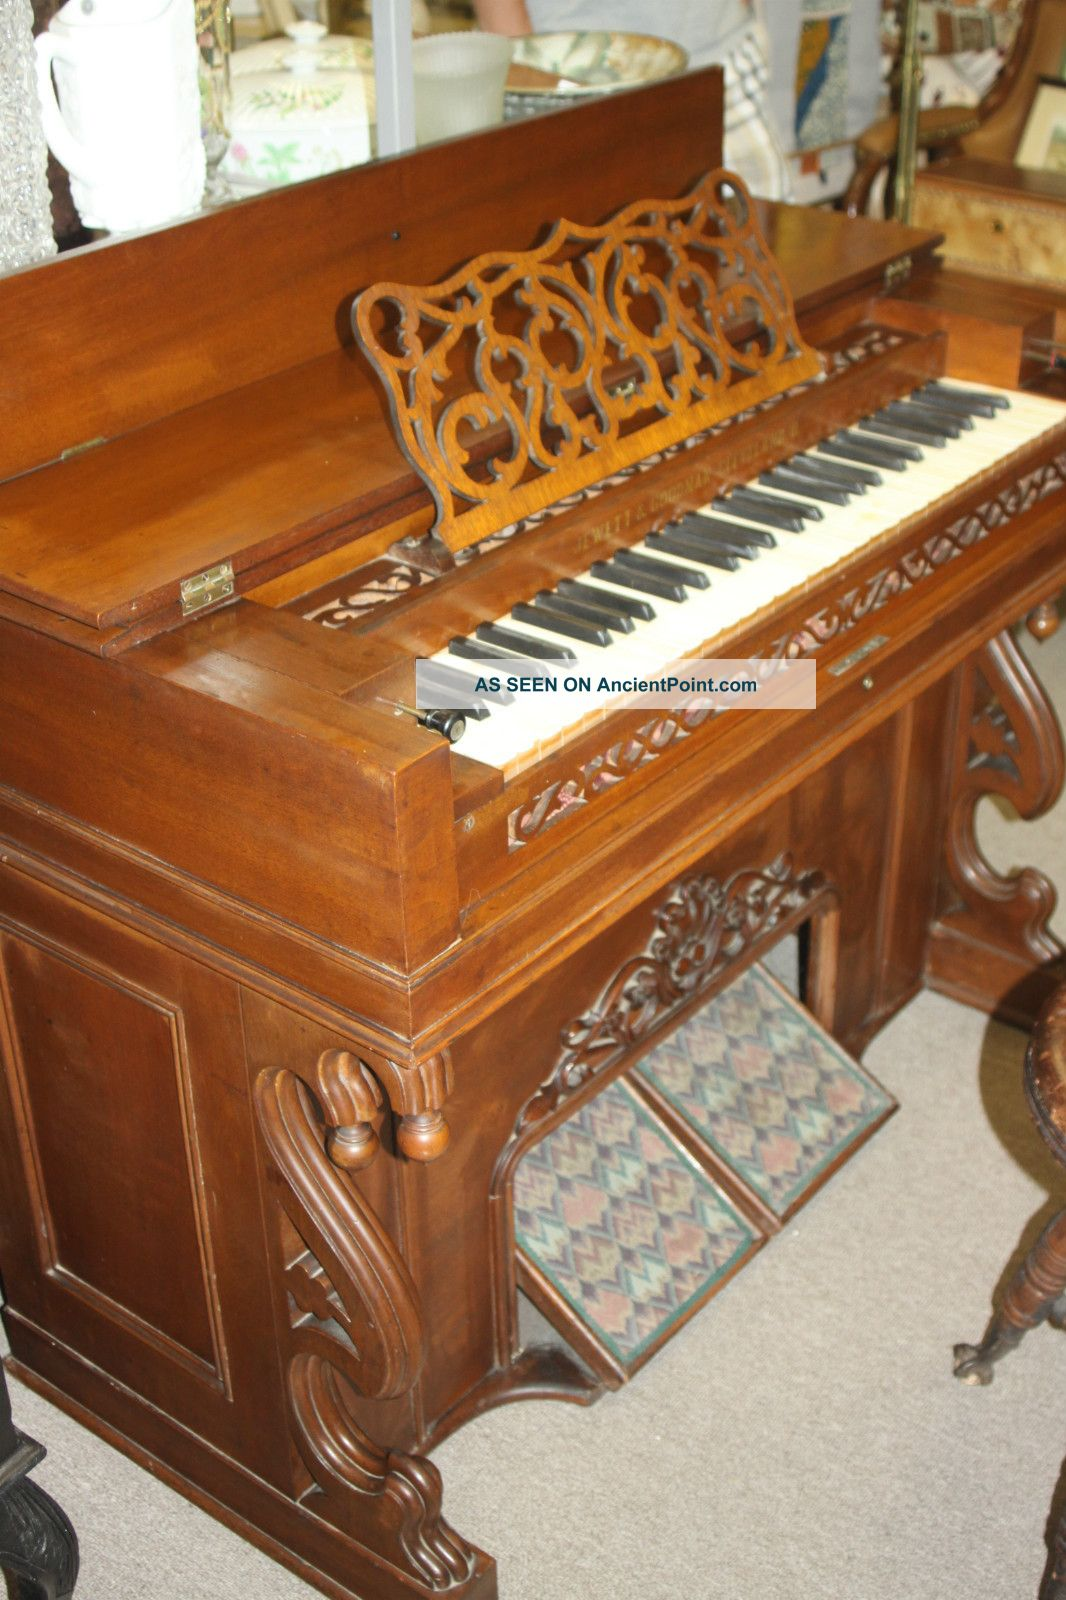 Antique Jewett & Goodman Reed Melodeon/pump Organ - 1860s Fully Restored Keyboard photo